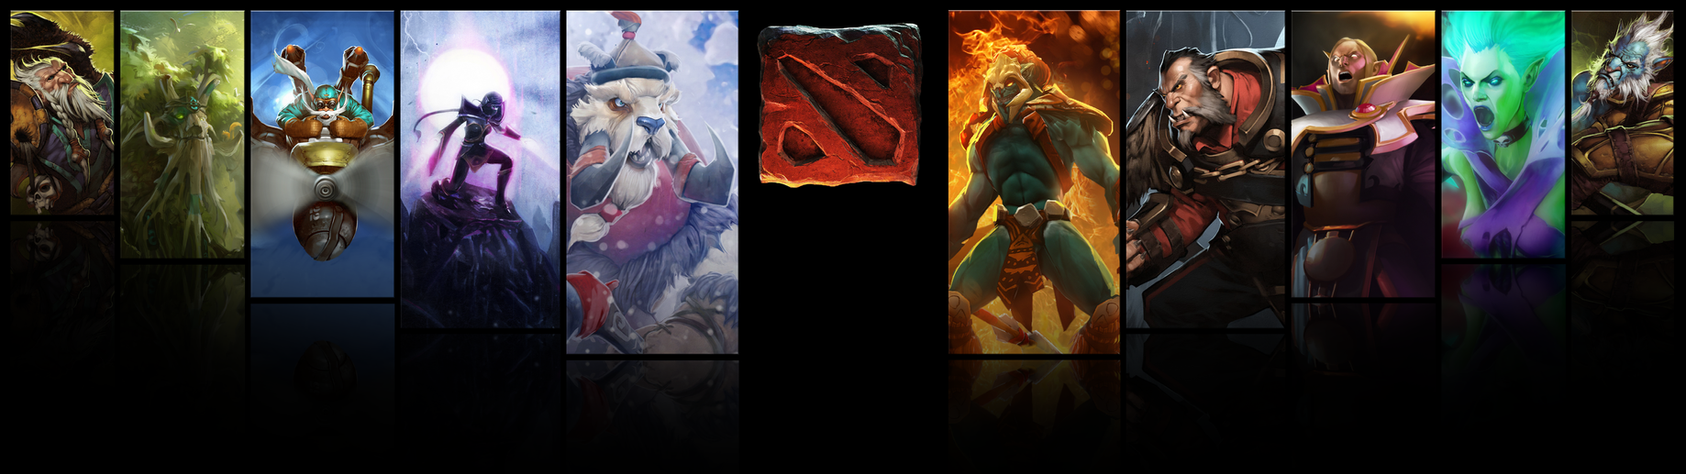 Dota 2 Dual Screen Wallpaper By Nut NBz